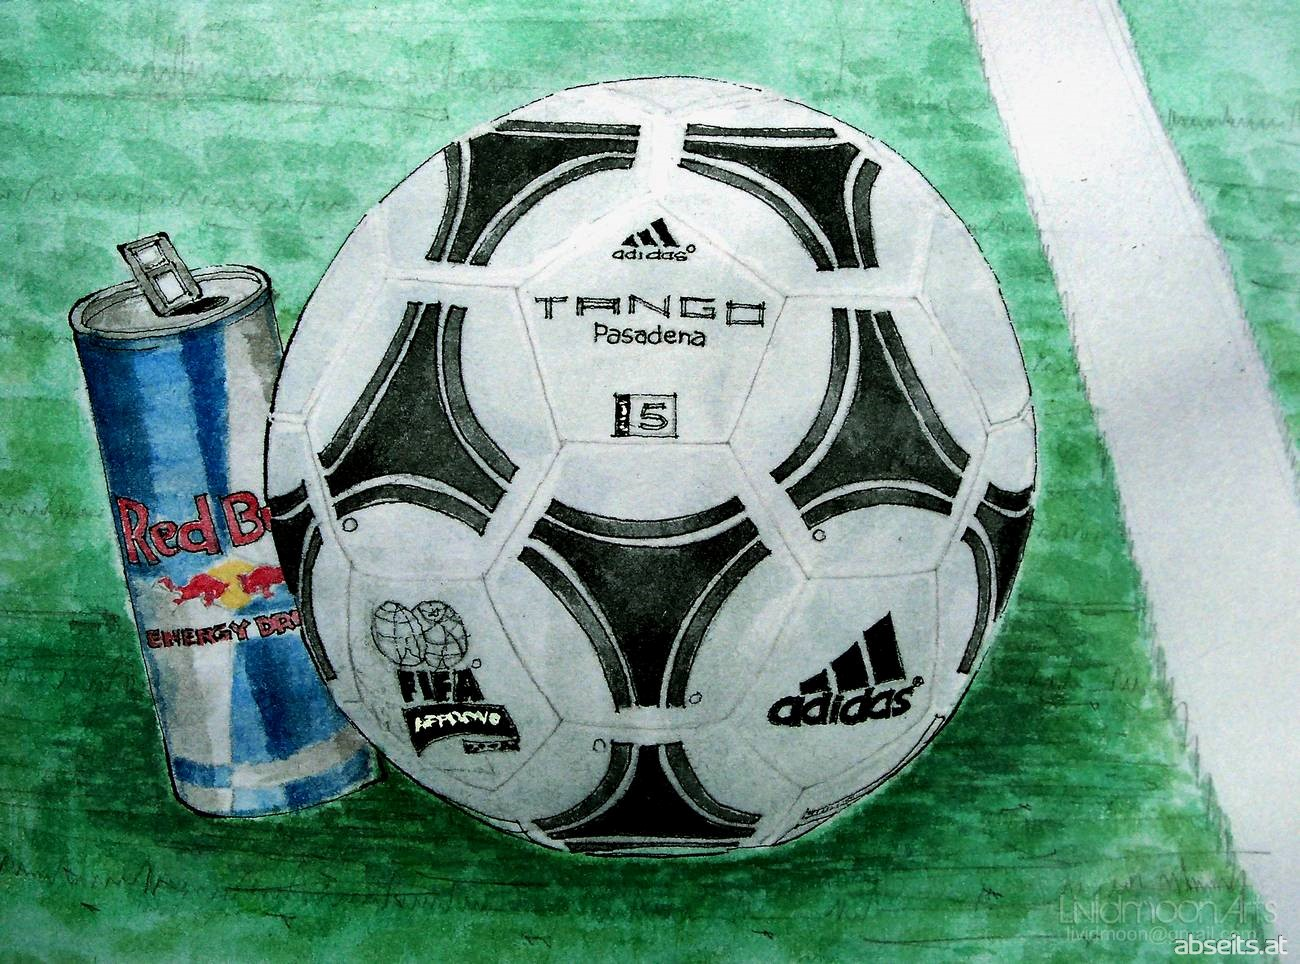 Tango mit Red Bull Dose_abseits.at